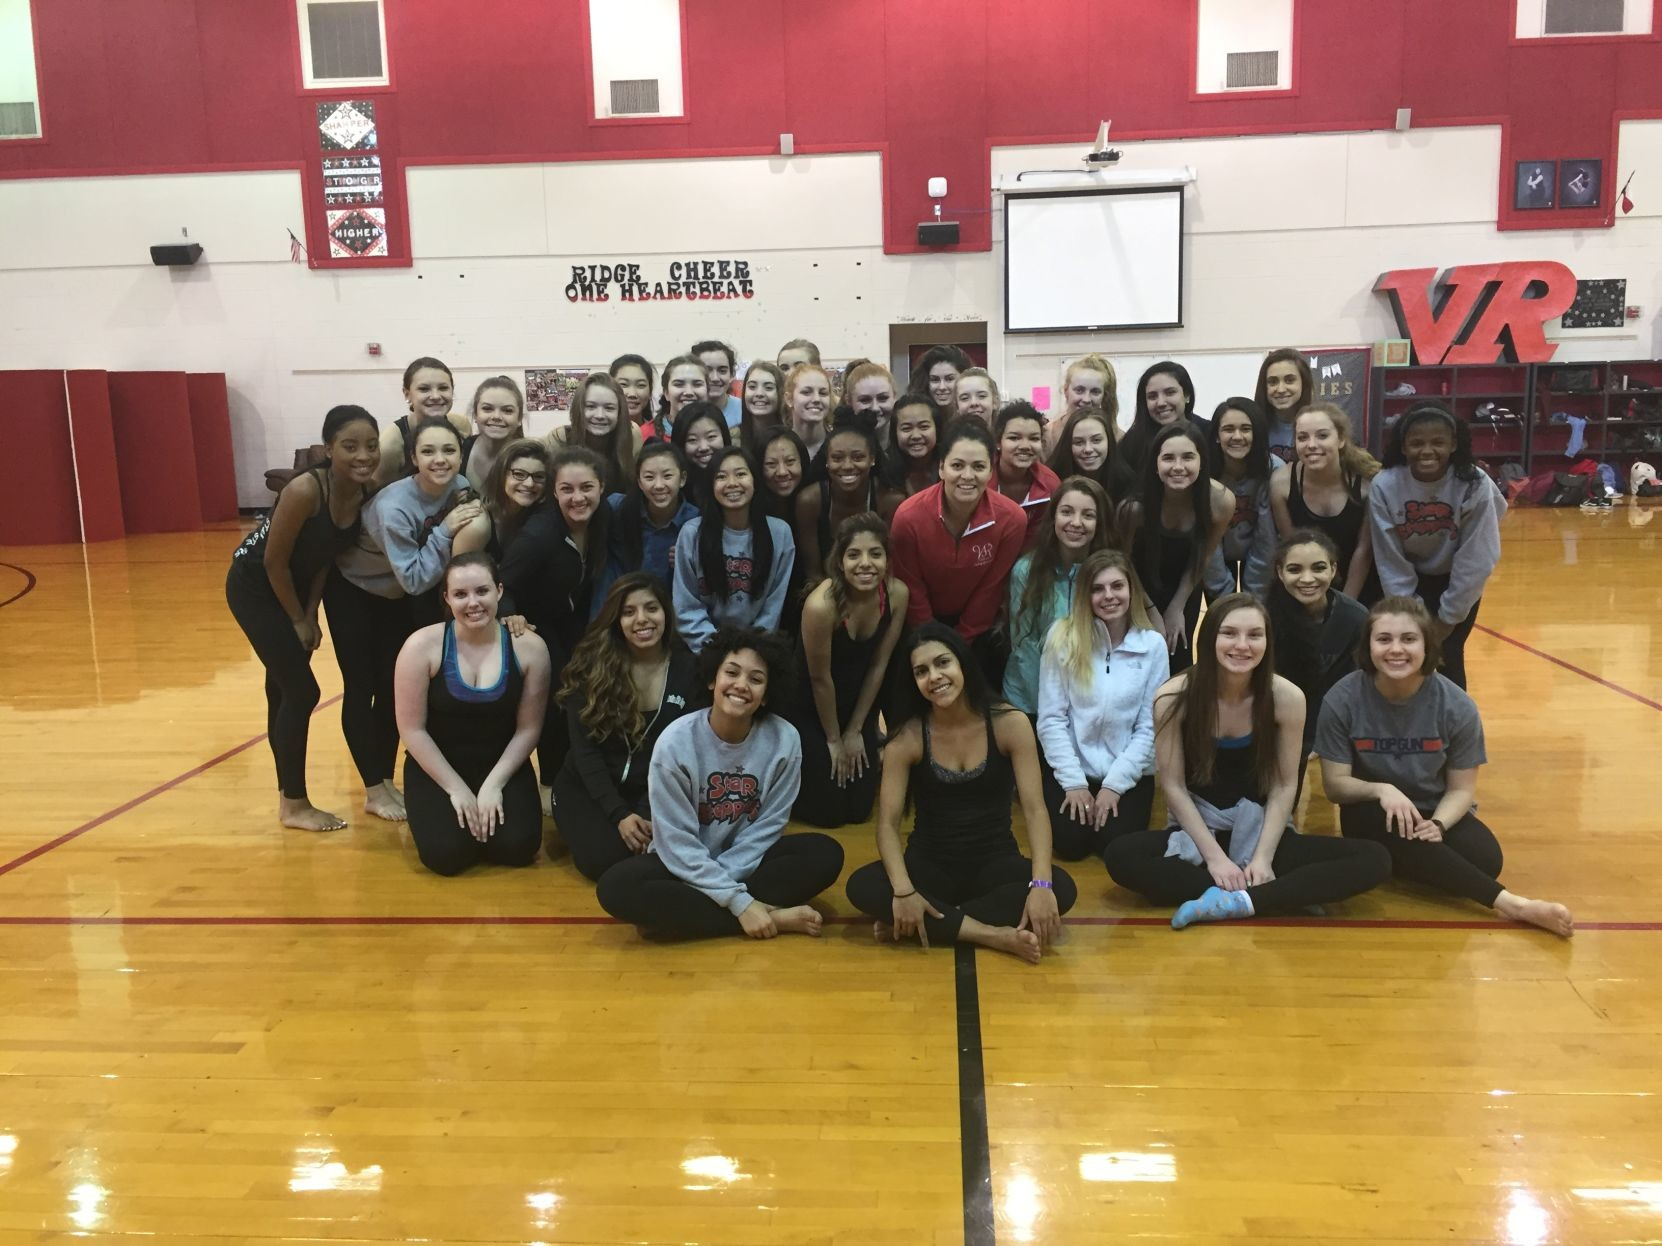 Araceli Lopez, Vista Ridge High School dance director, and her team.